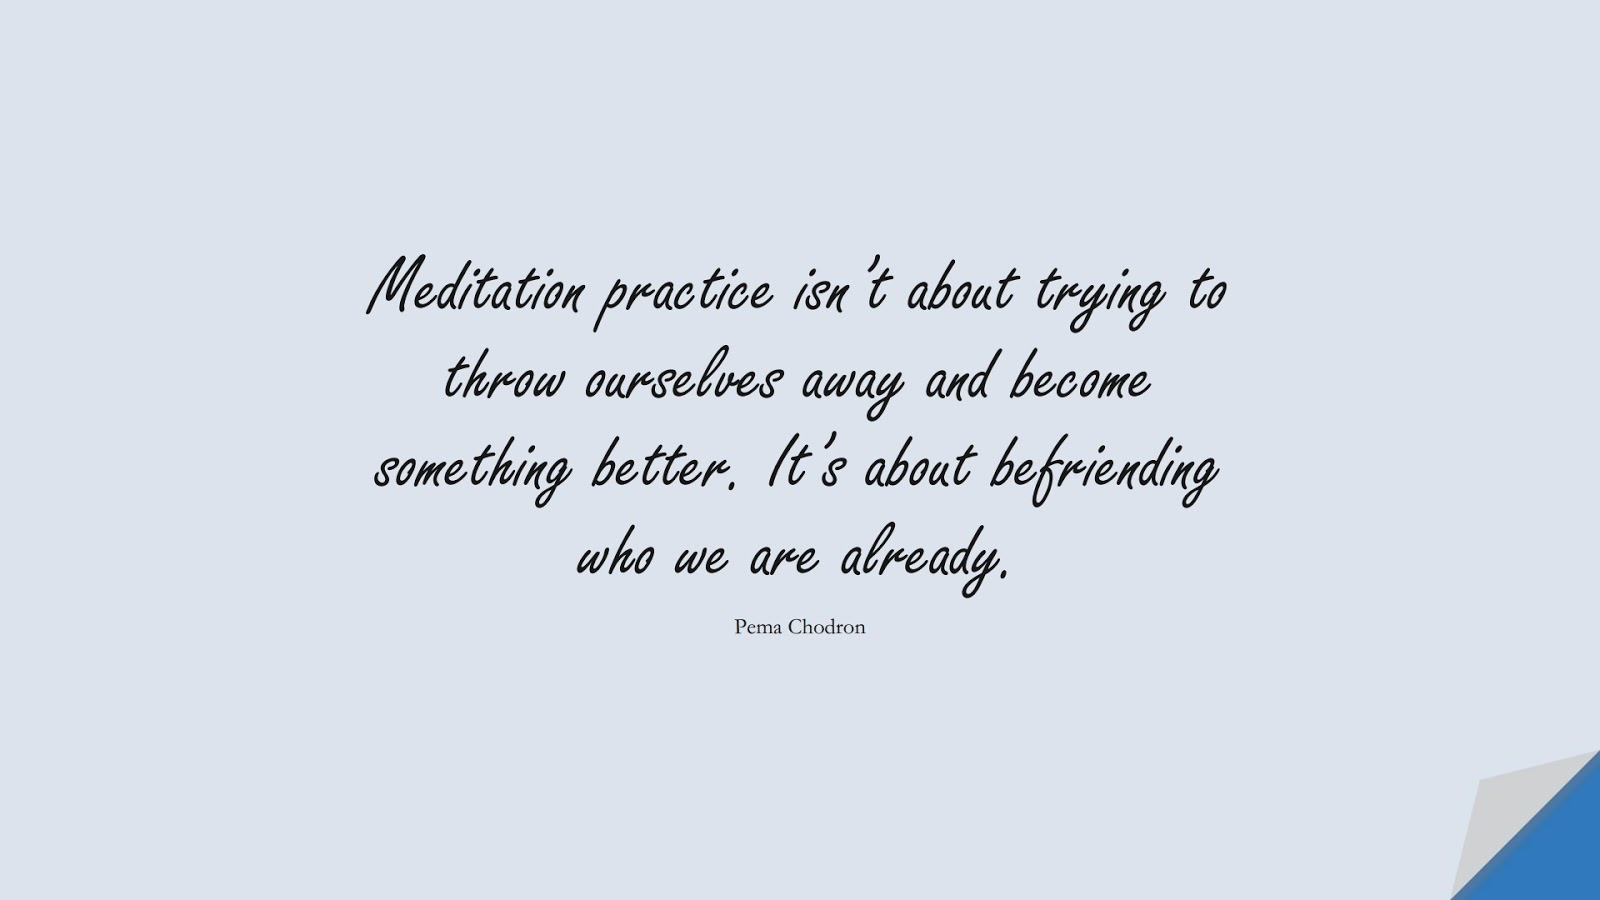 Meditation practice isn't about trying to throw ourselves away and become something better. It's about befriending who we are already. (Pema Chodron);  #LoveYourselfQuotes